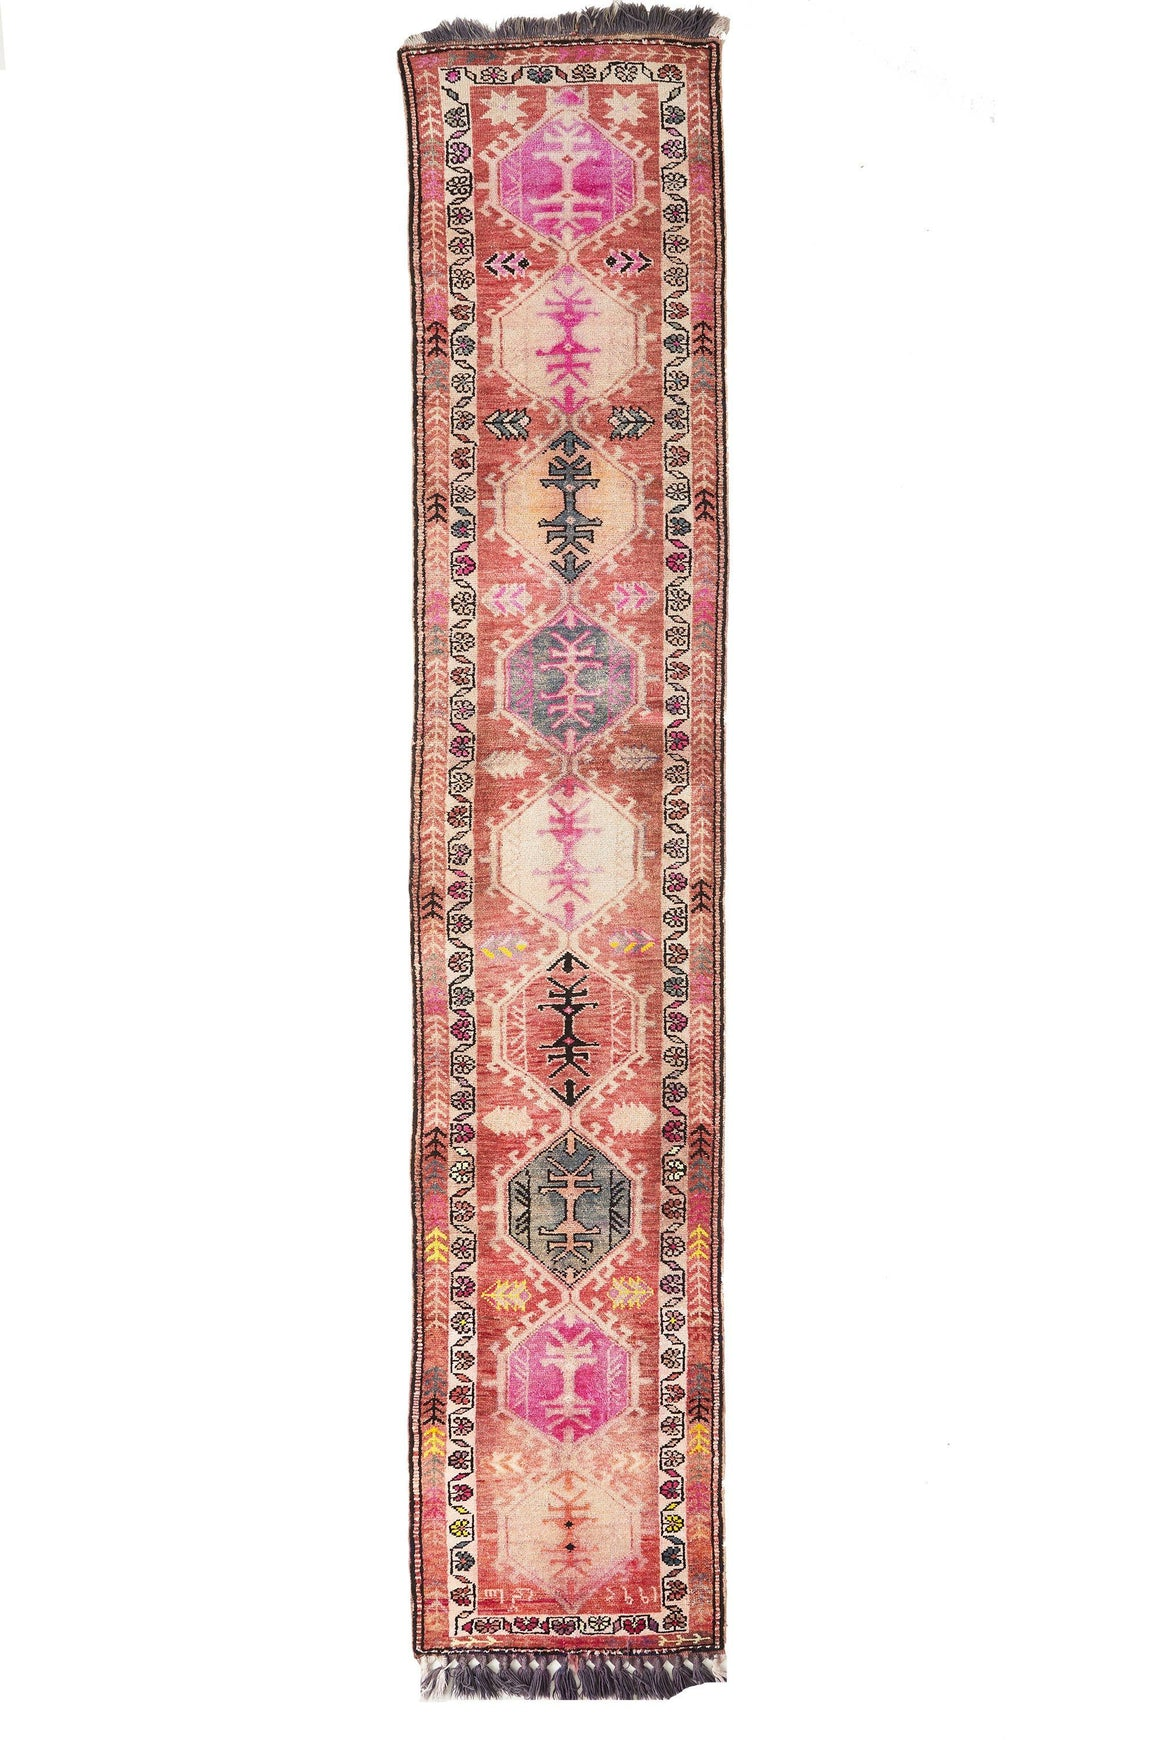 'RR-0818-539' Tribal Runner Rug - Canary Lane - Curated Textiles